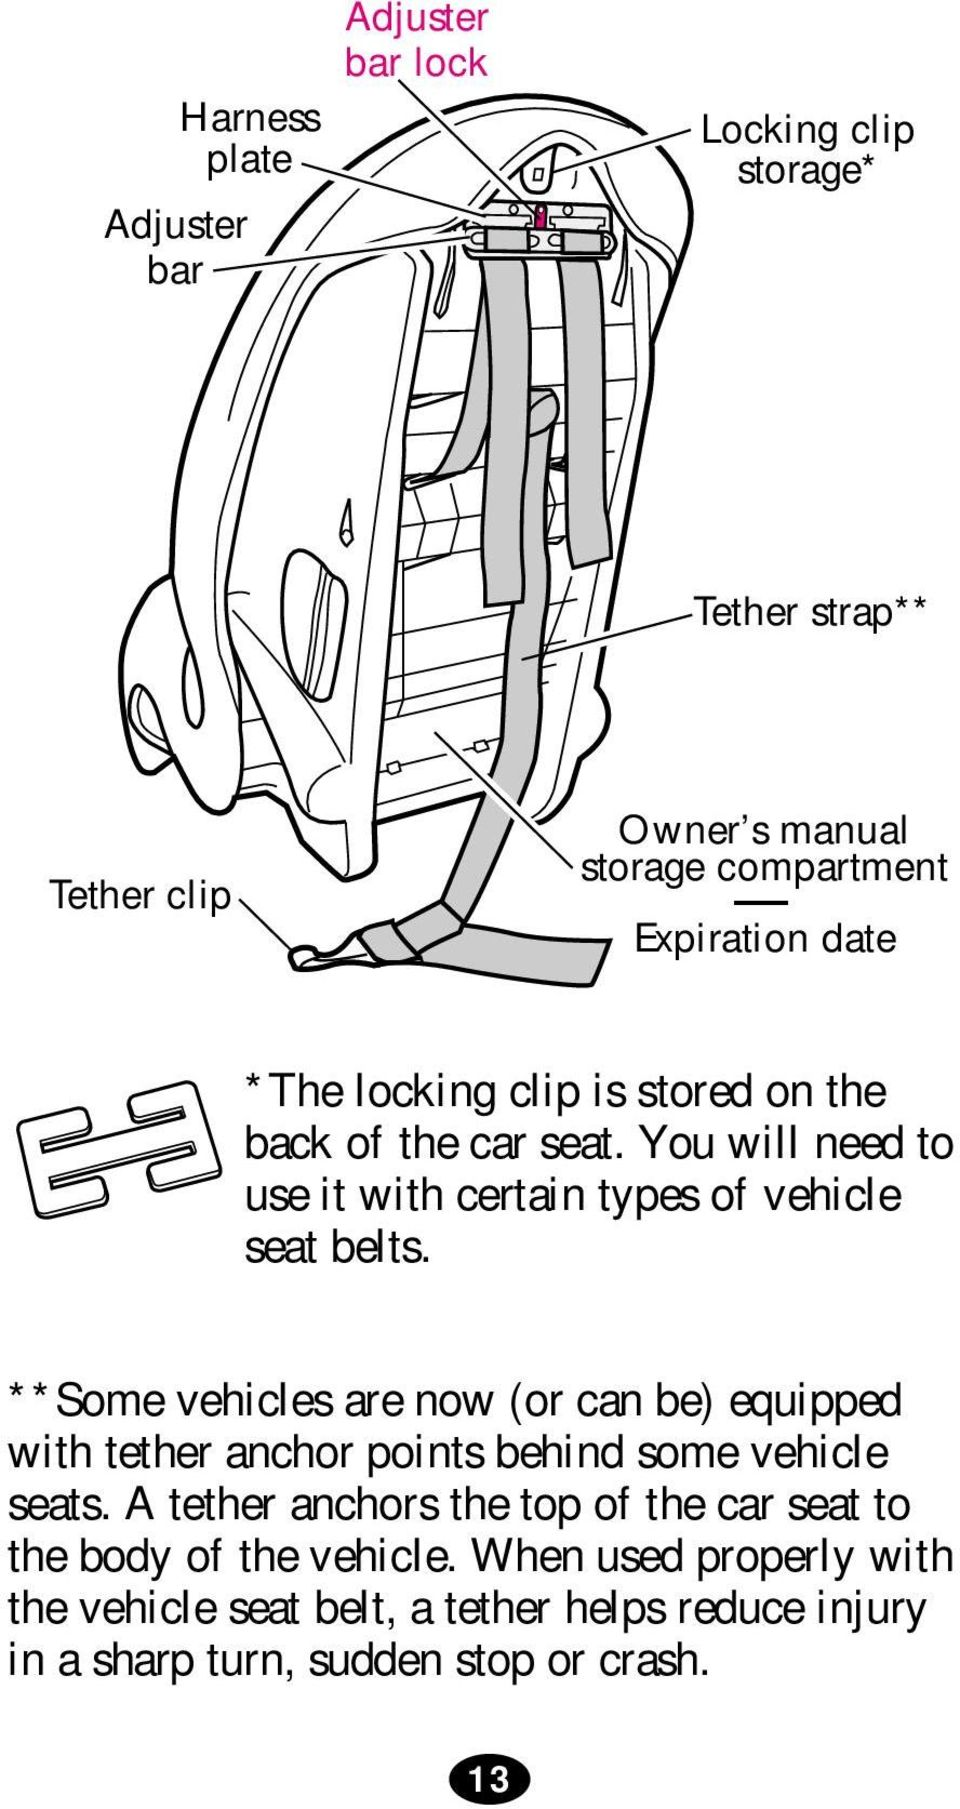 **Some vehicles are now (or can be) equipped with tether anchor points behind some vehicle seats.